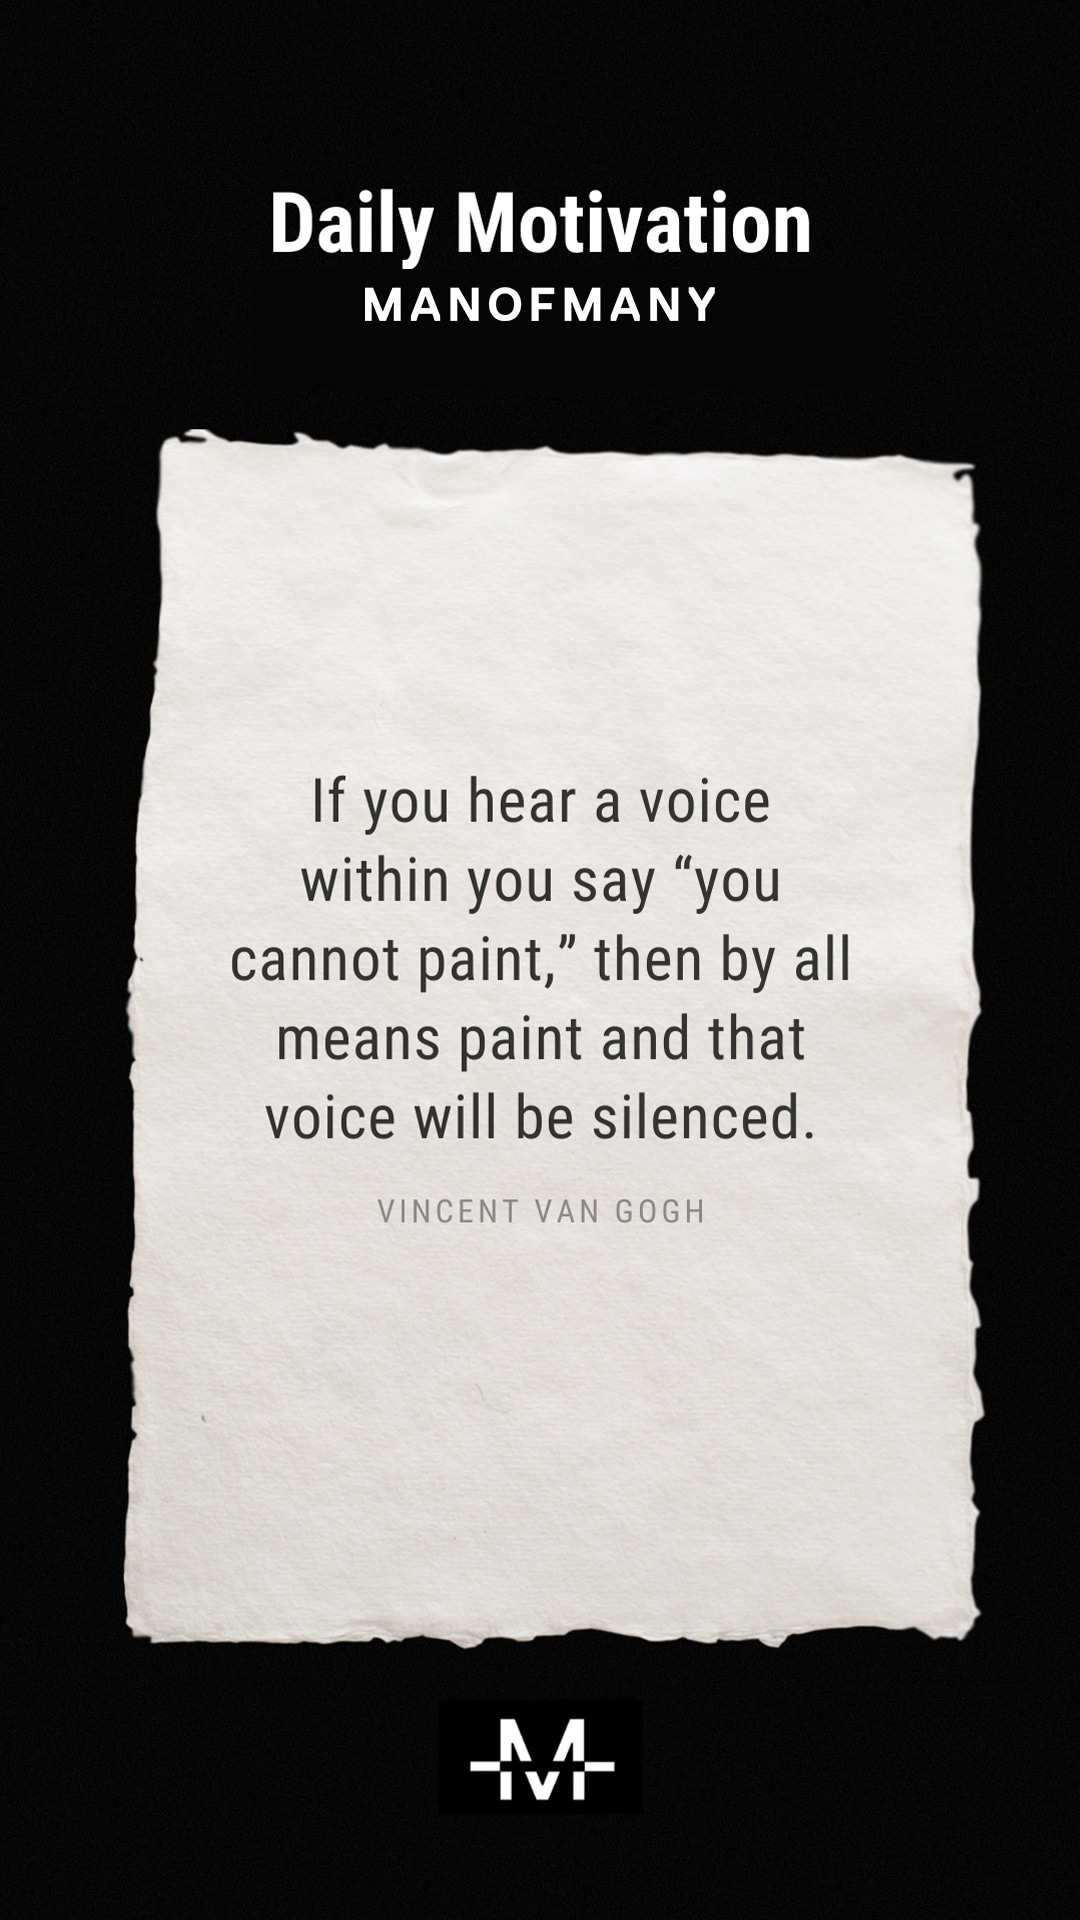 """If you hear a voice within you say """"you cannot paint,"""" then by all means paint and that voice will be silenced. –Vincent Van Gogh quote"""